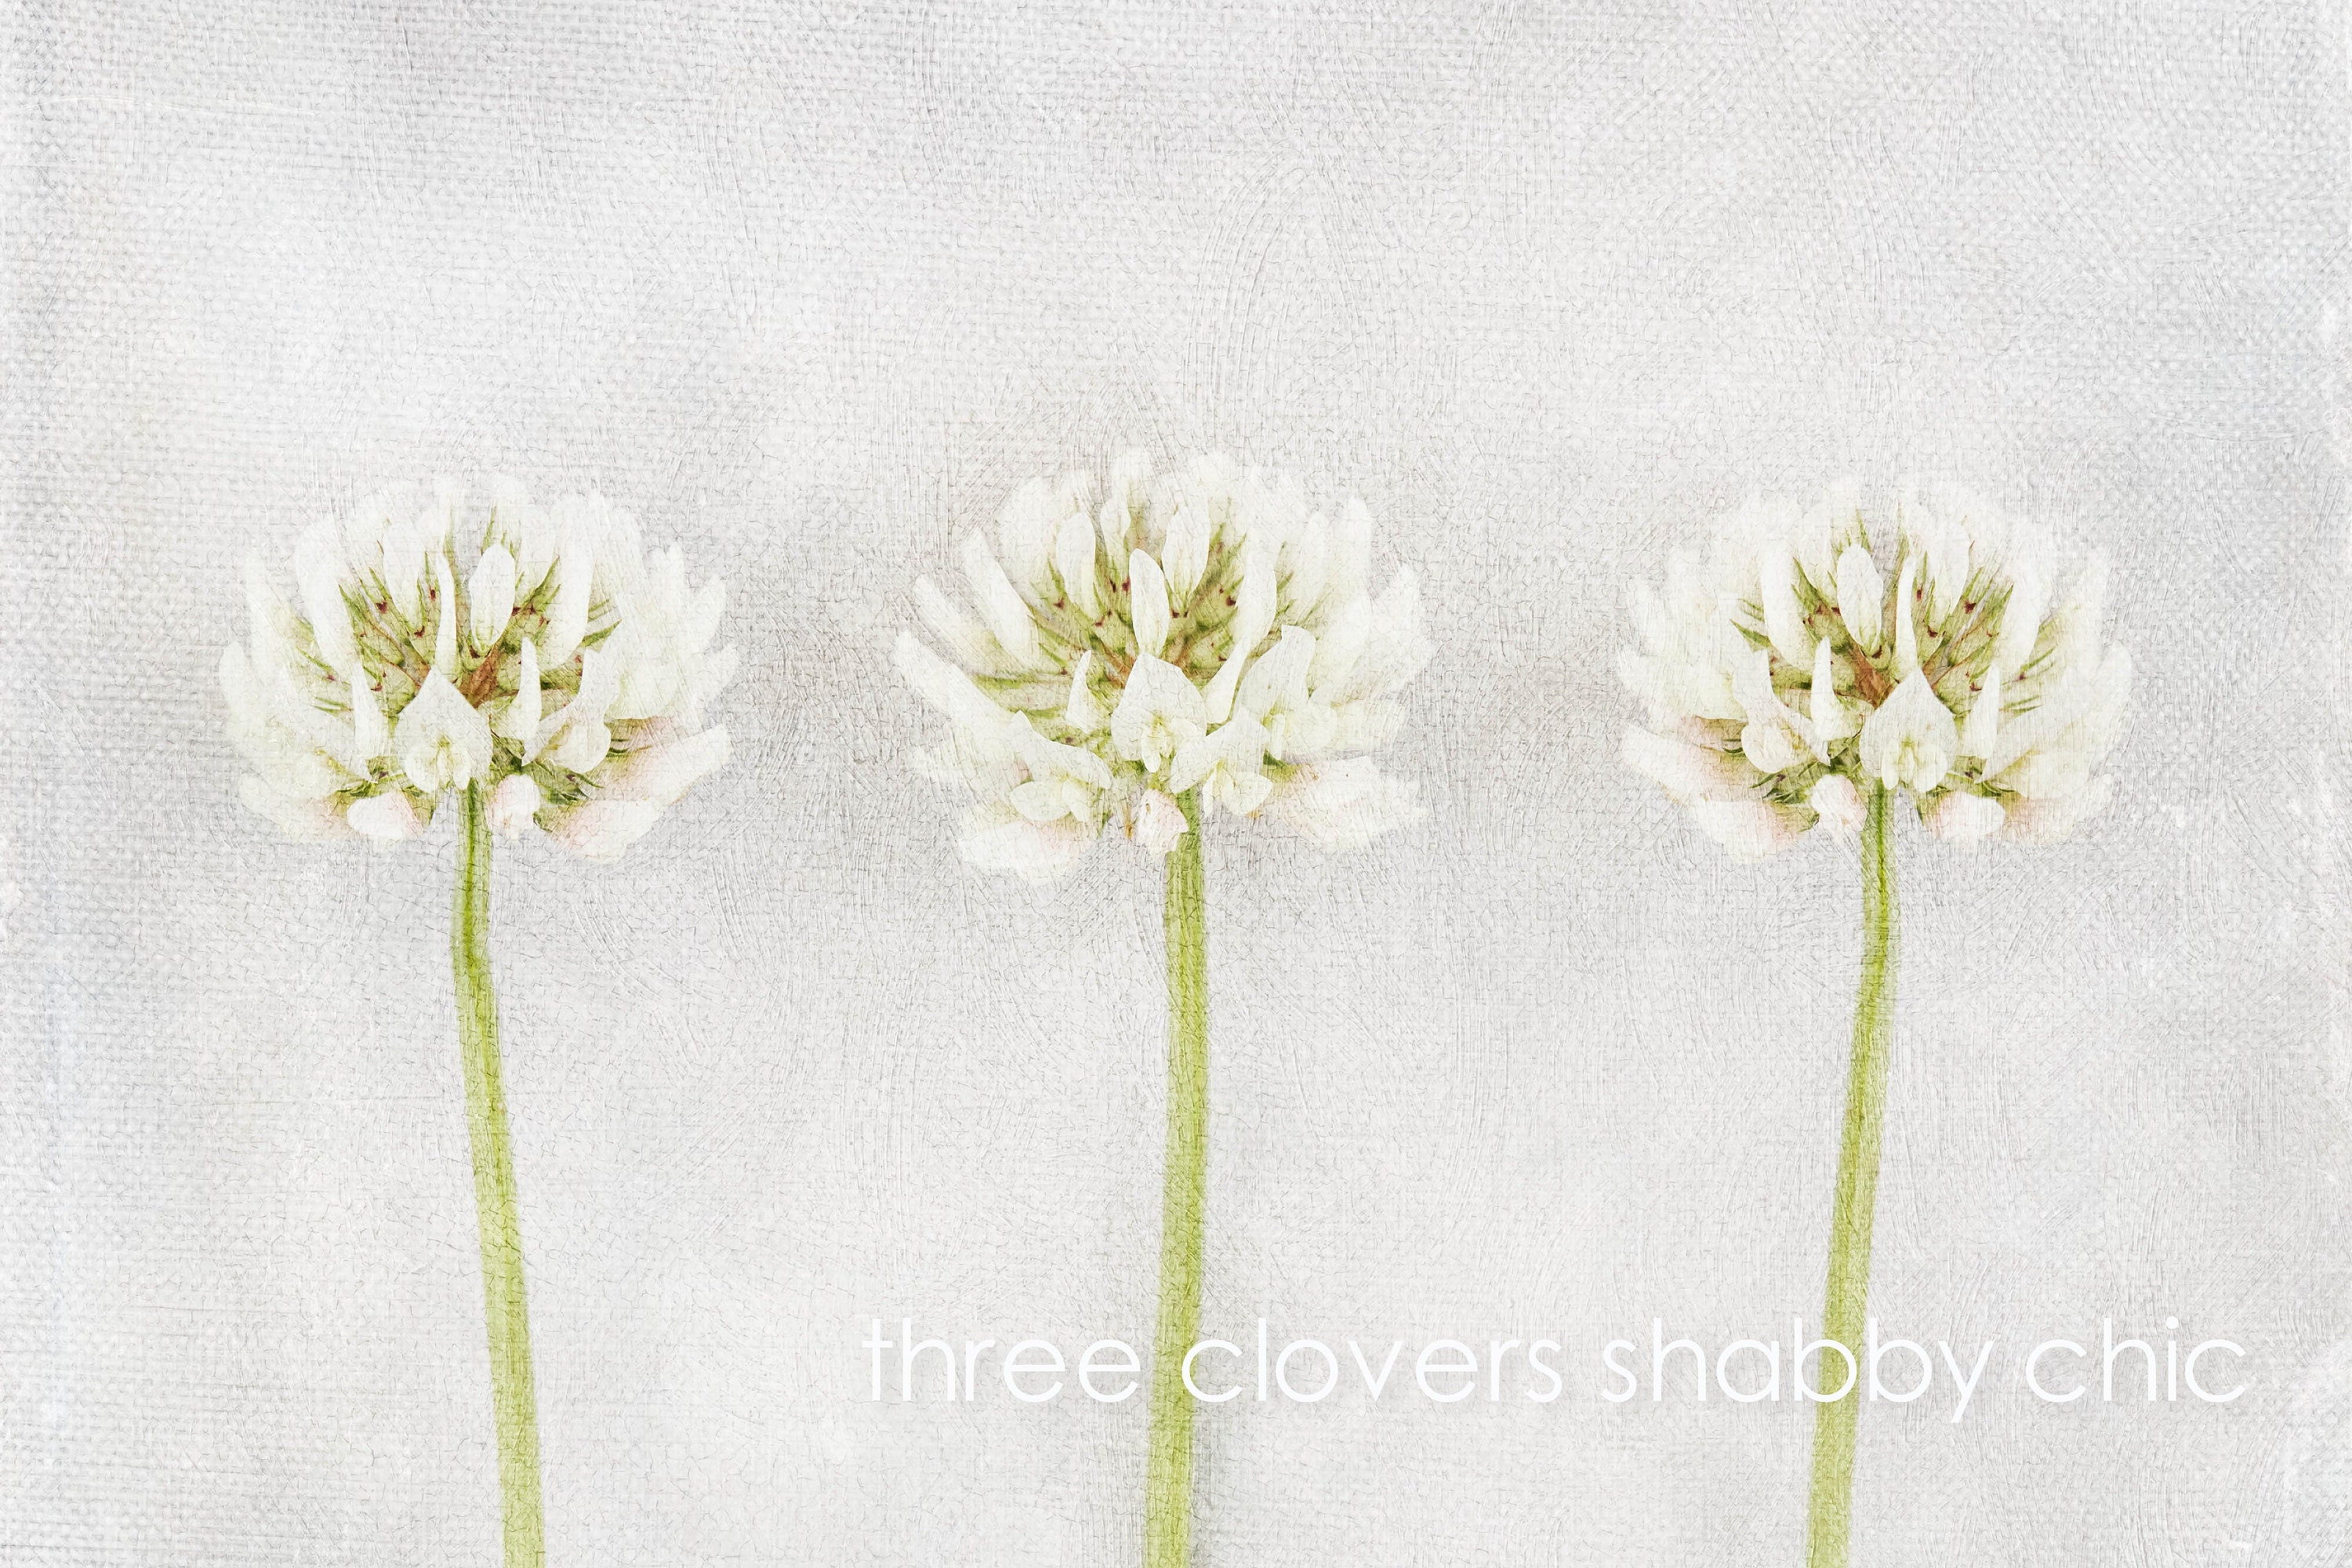 gardener gift- three wildflower white clover flowers with shabby chic textures - available as ready to hang floral wall art or unframed fine art limited edition prints